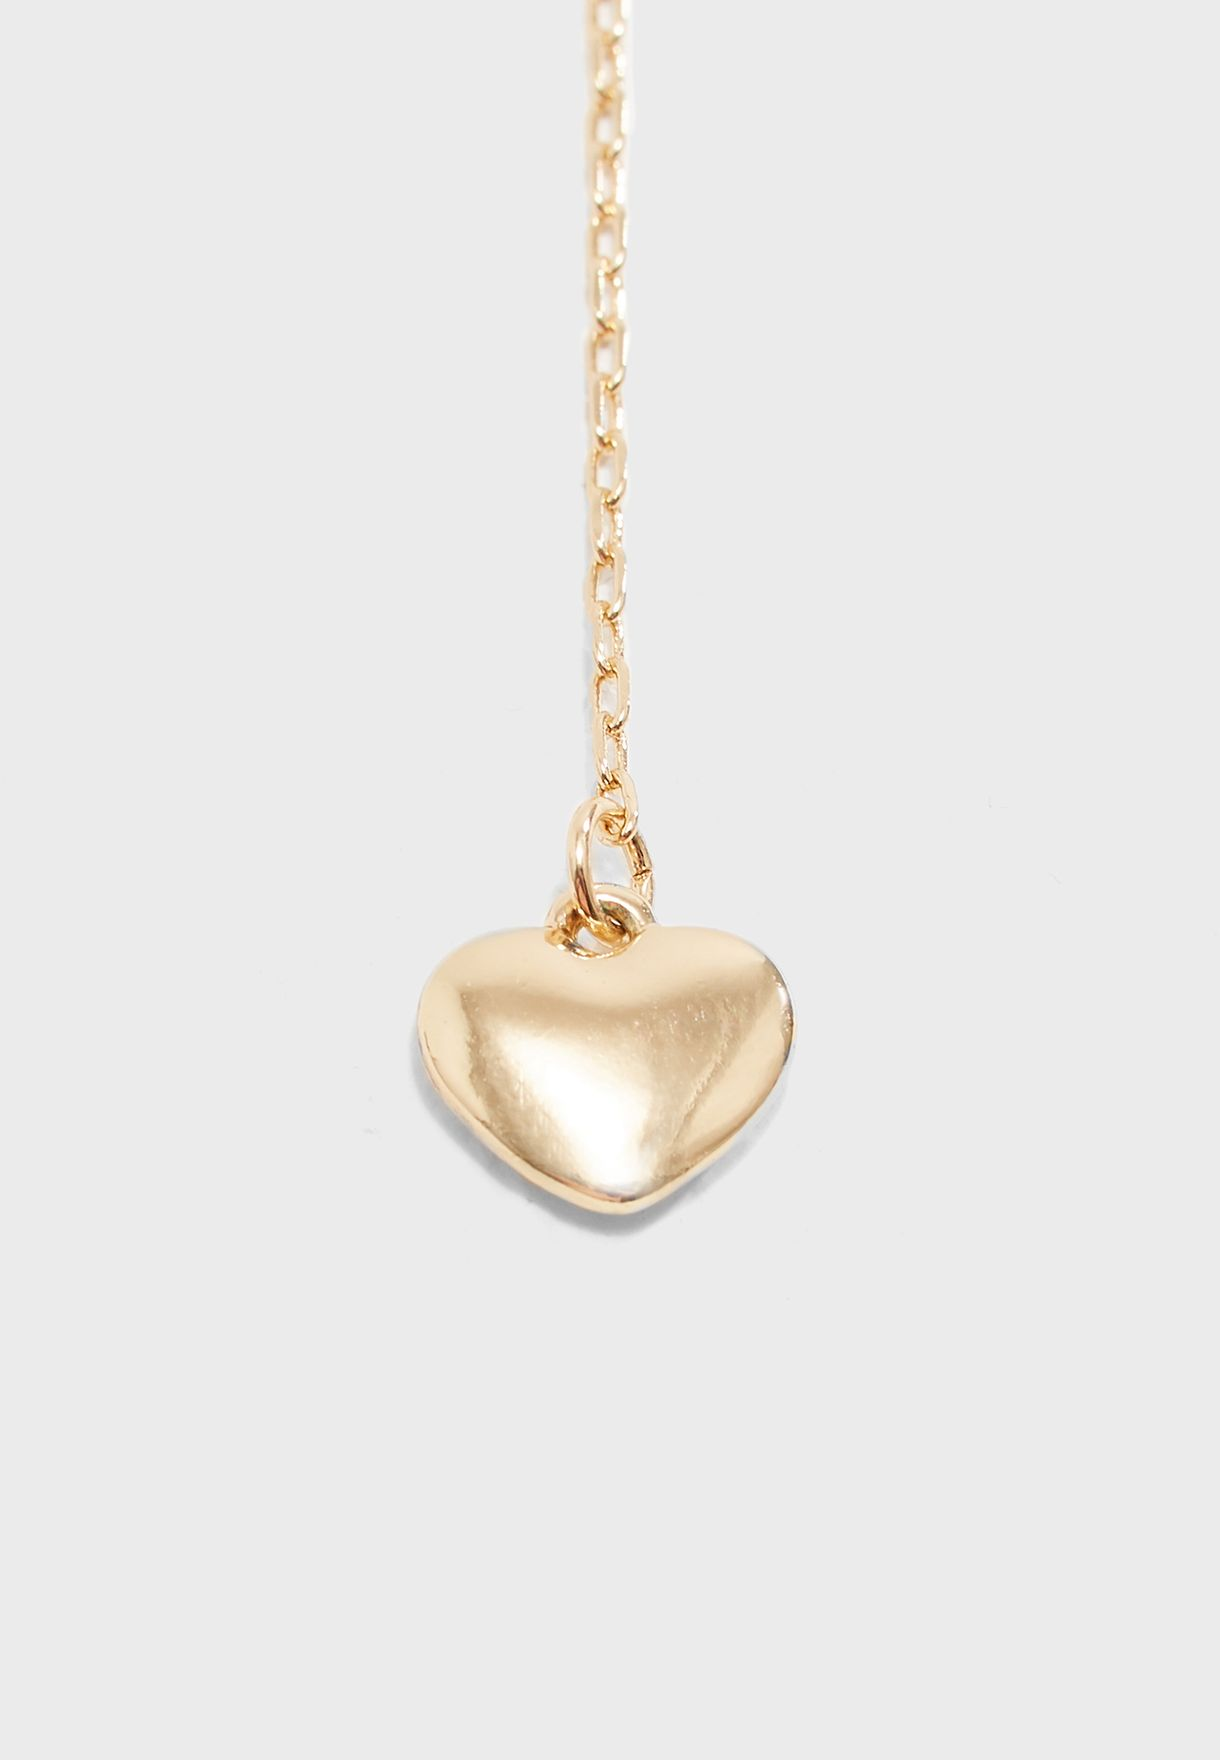 55ba96d92eabf Heart Charm Layered Drop Chain Necklace